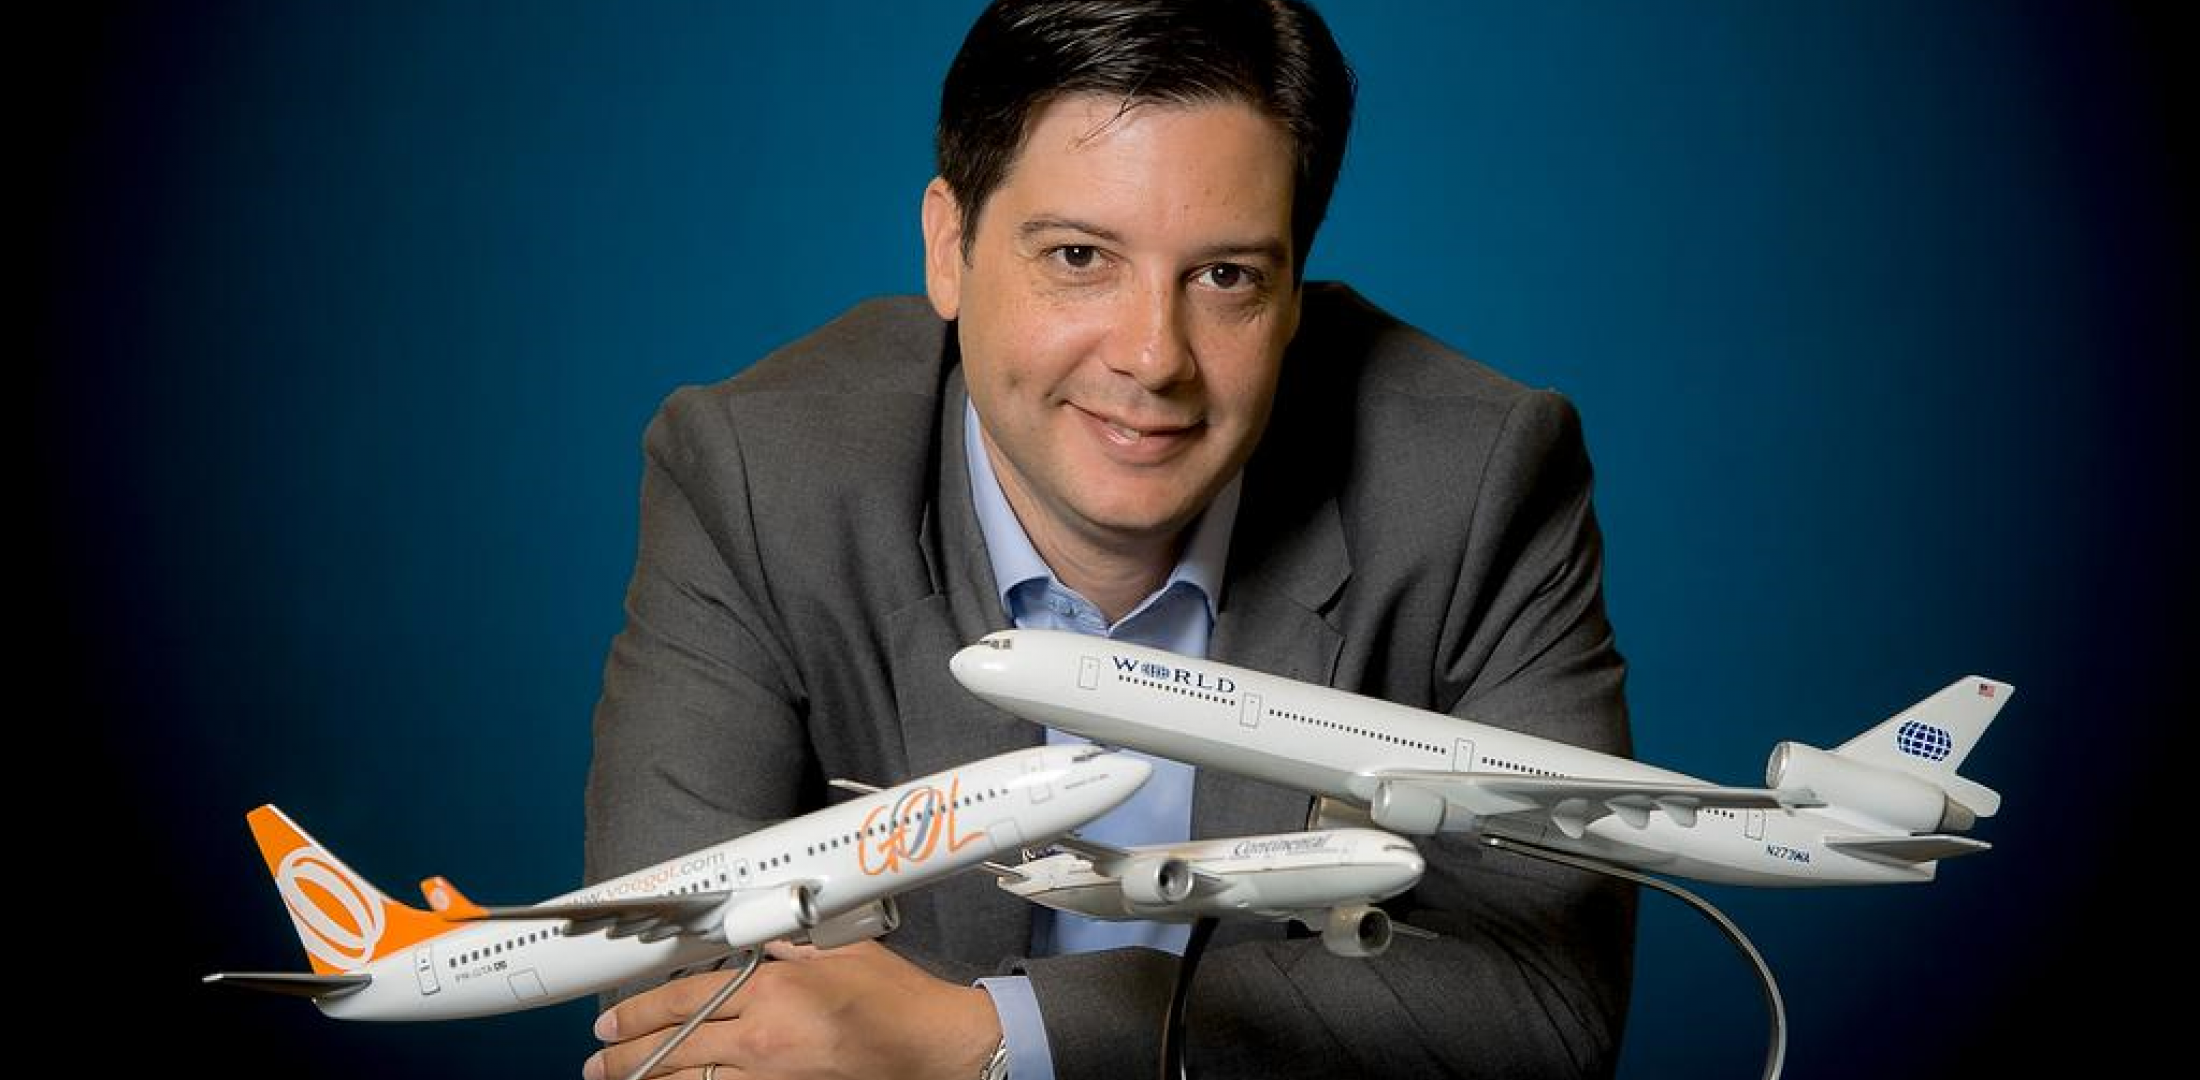 Avionica COO Anthony Rios